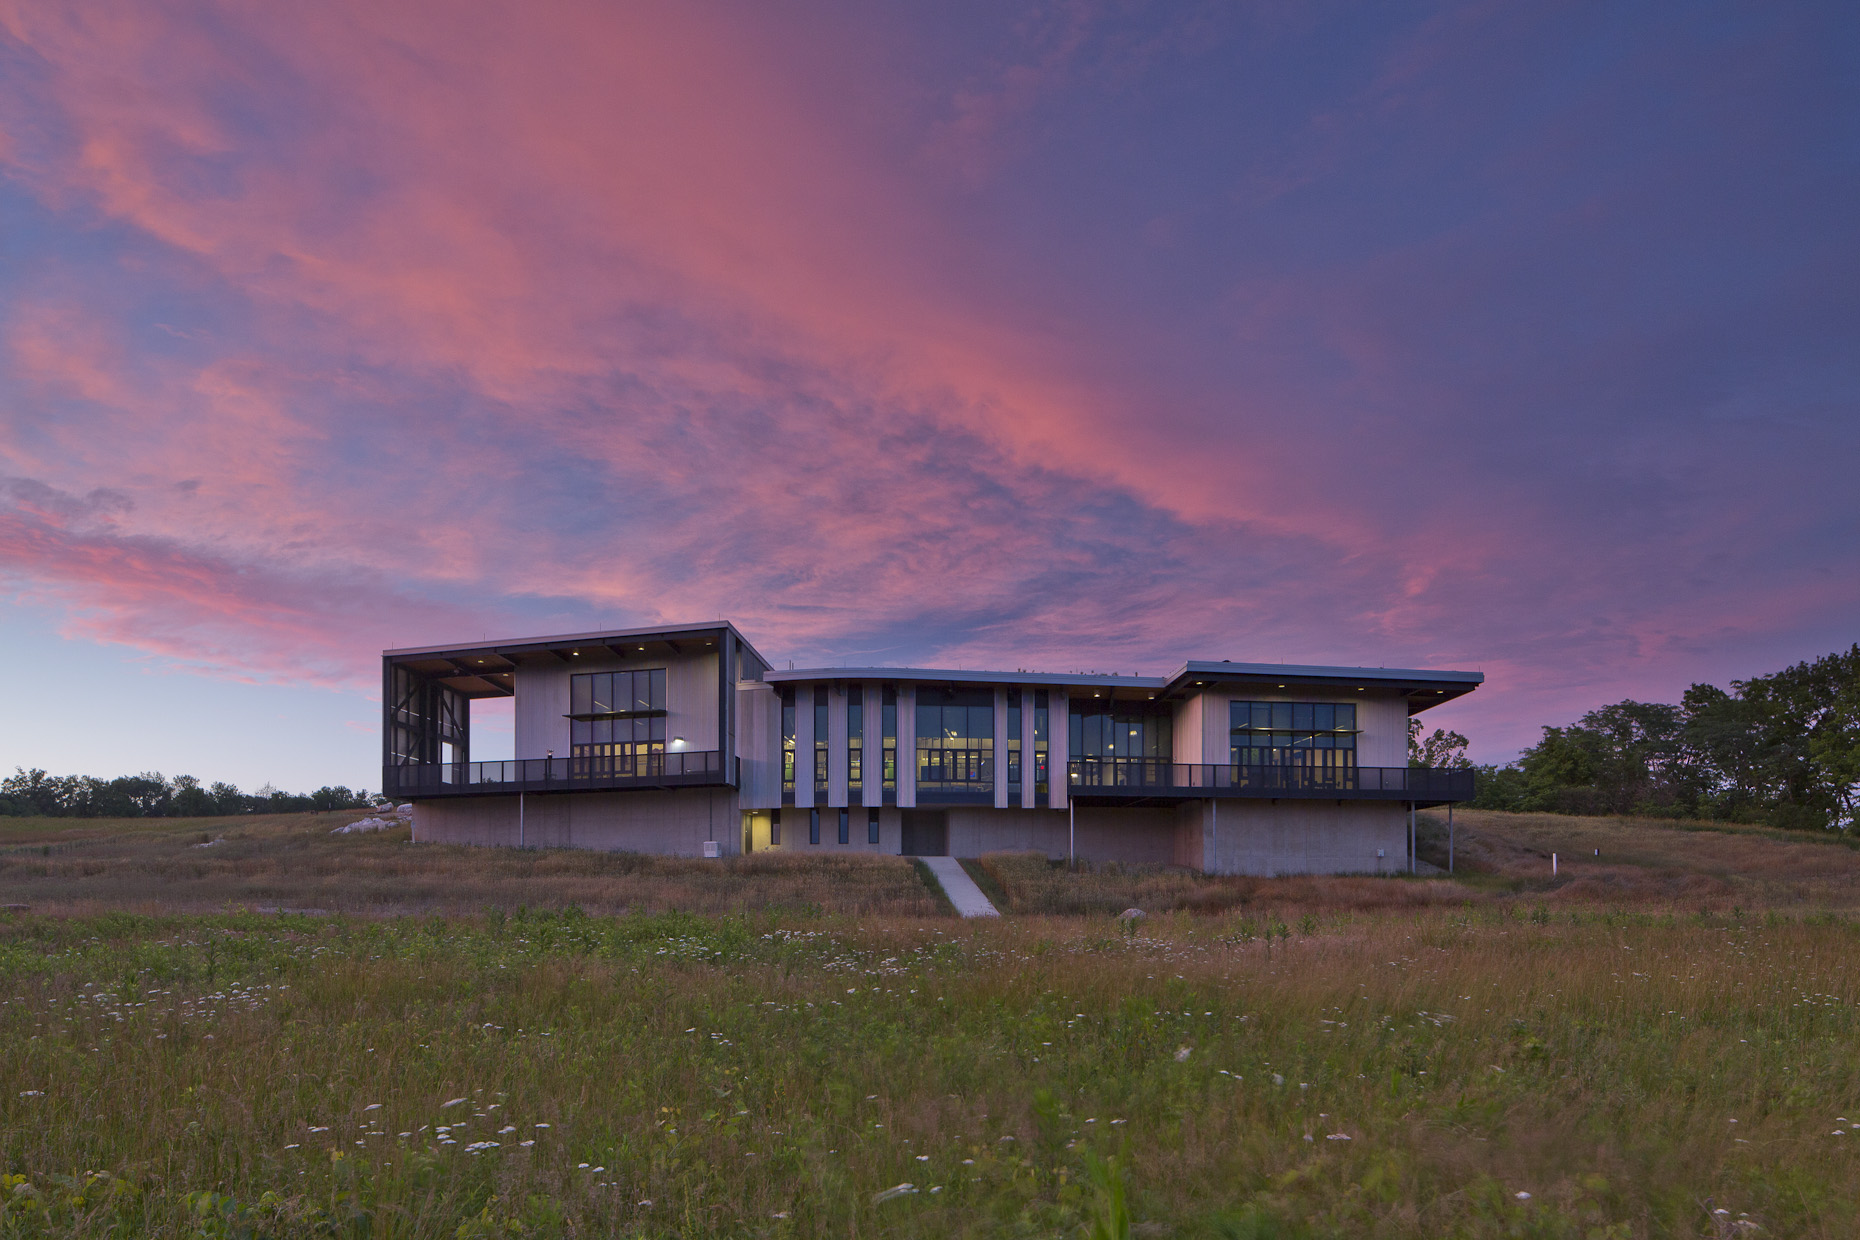 Battelle-Darby Creek Metro Park Nature Center by DesignGroup